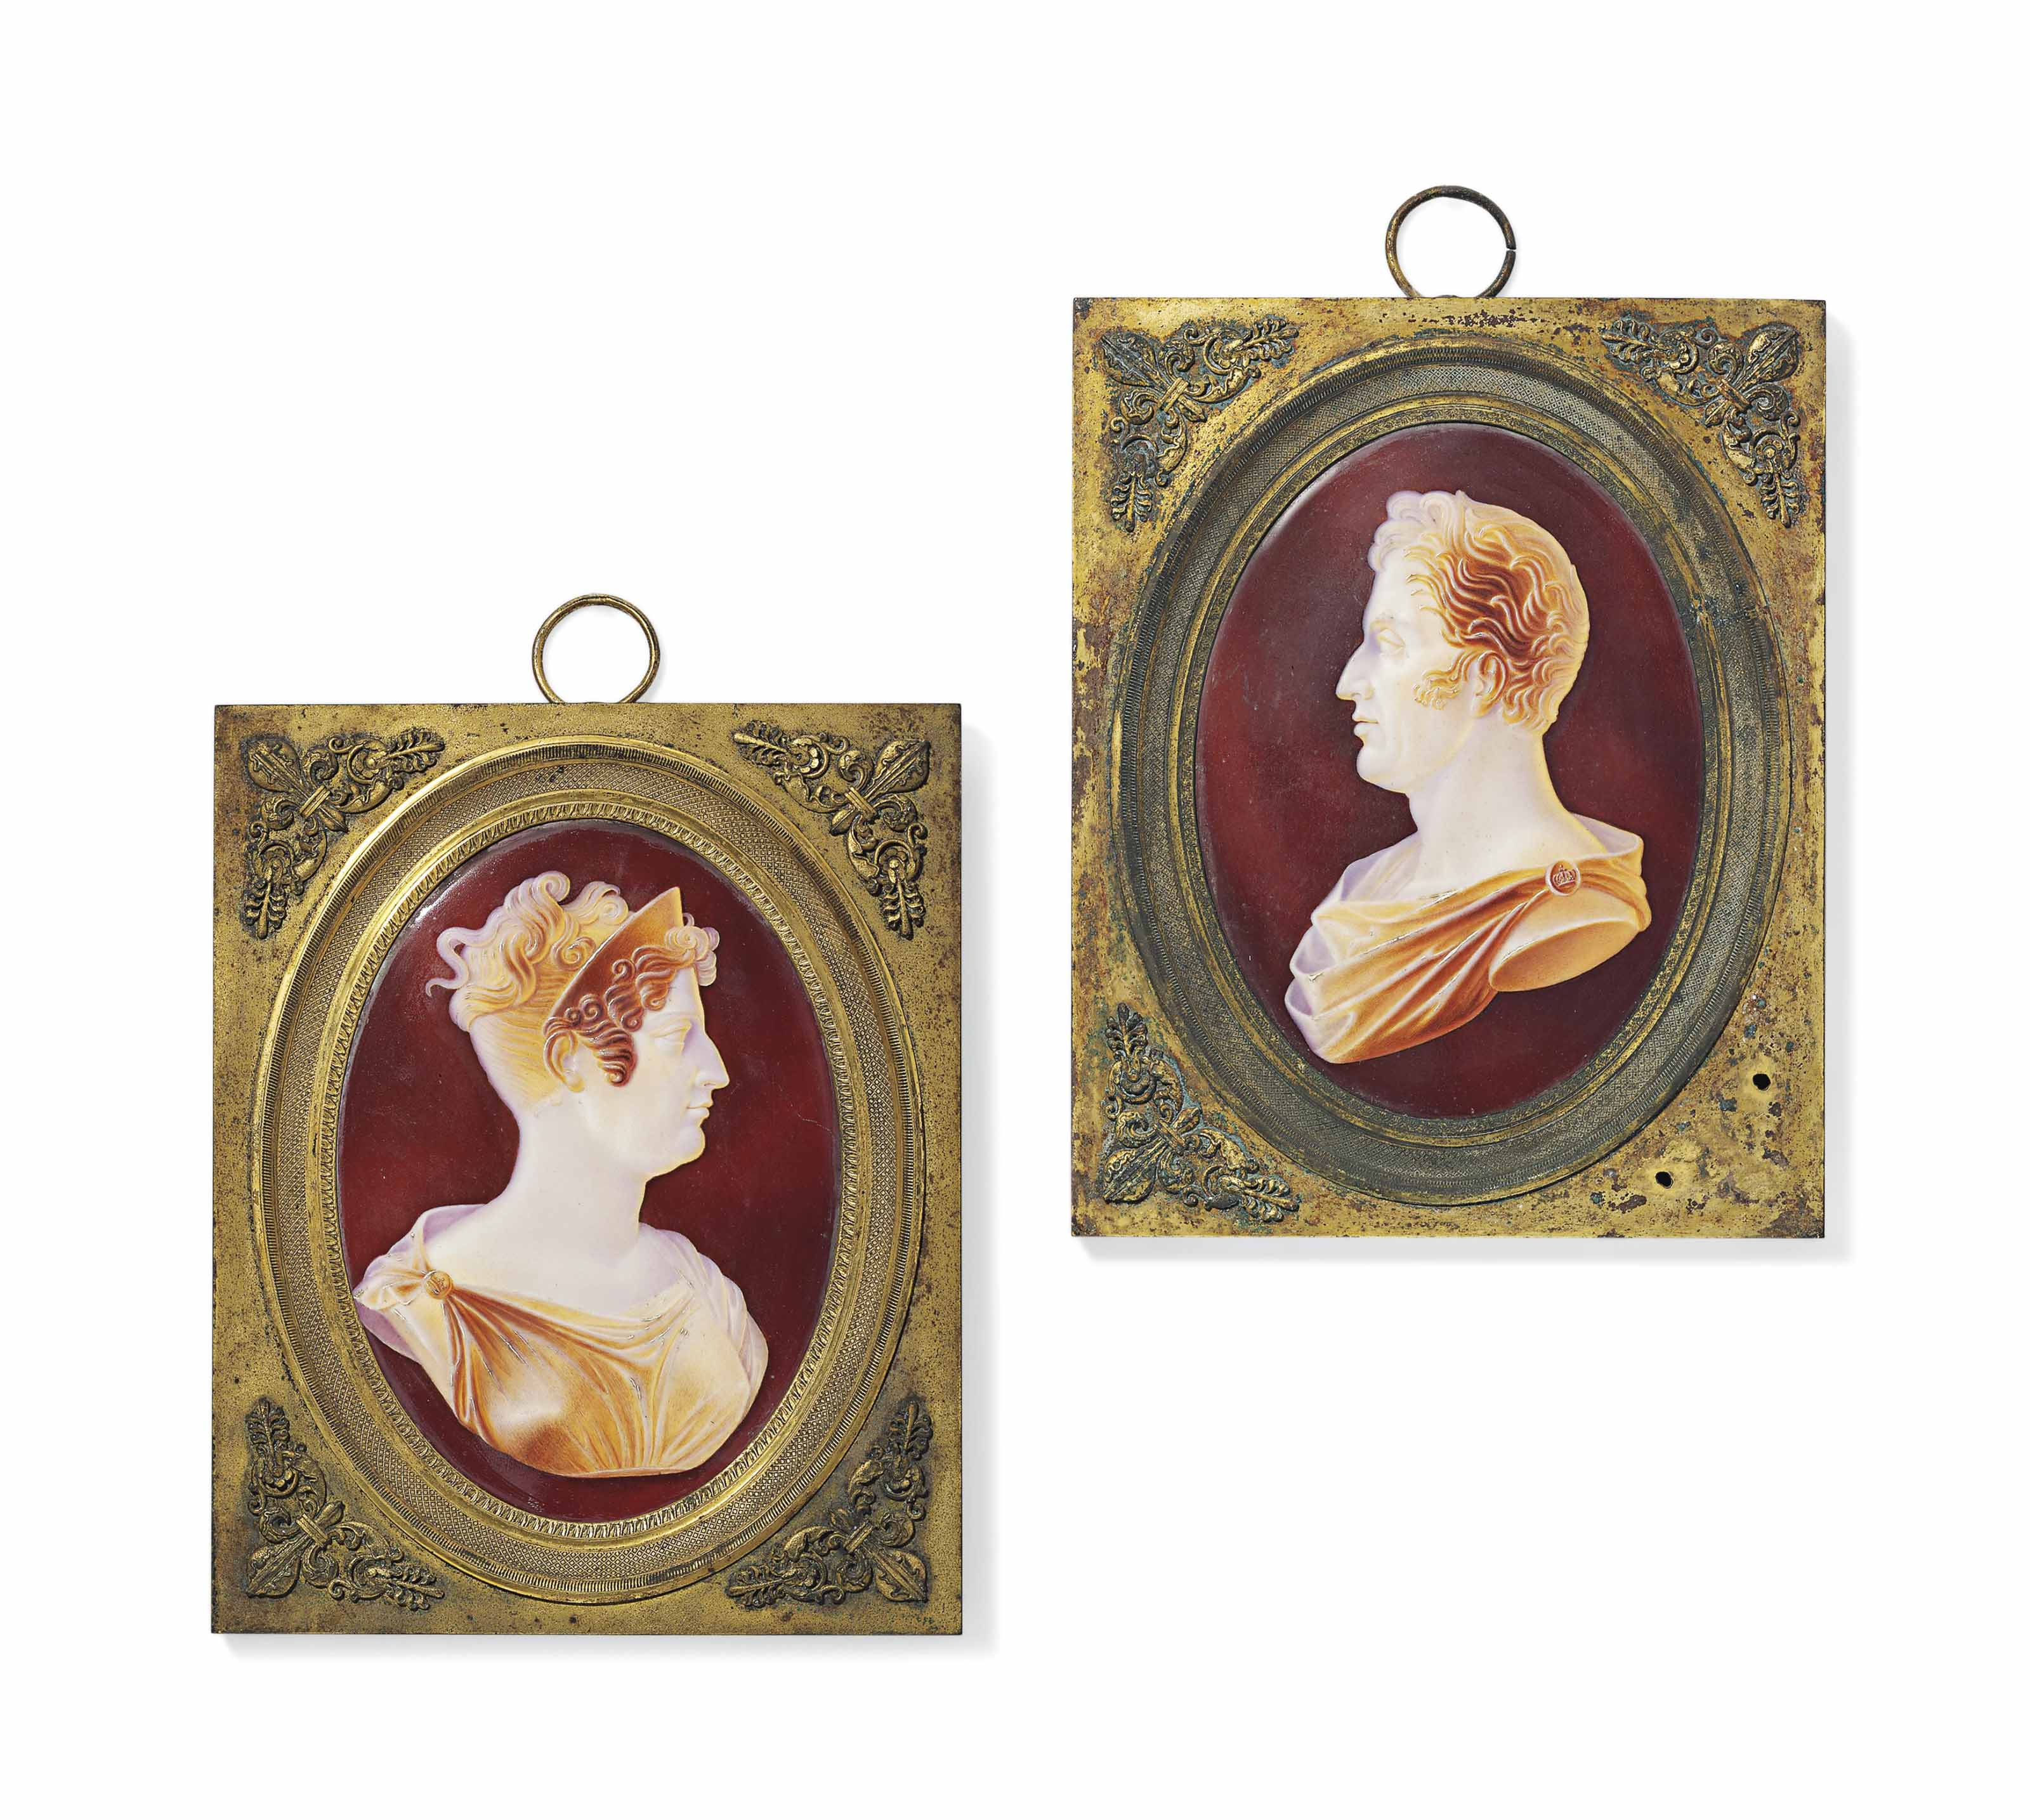 A PAIR OF SEVRES ORMOLU-MOUNTED OVAL PORTRAIT PLAQUES OF CHARLES X AND MARIE THERESE OF FRANCE